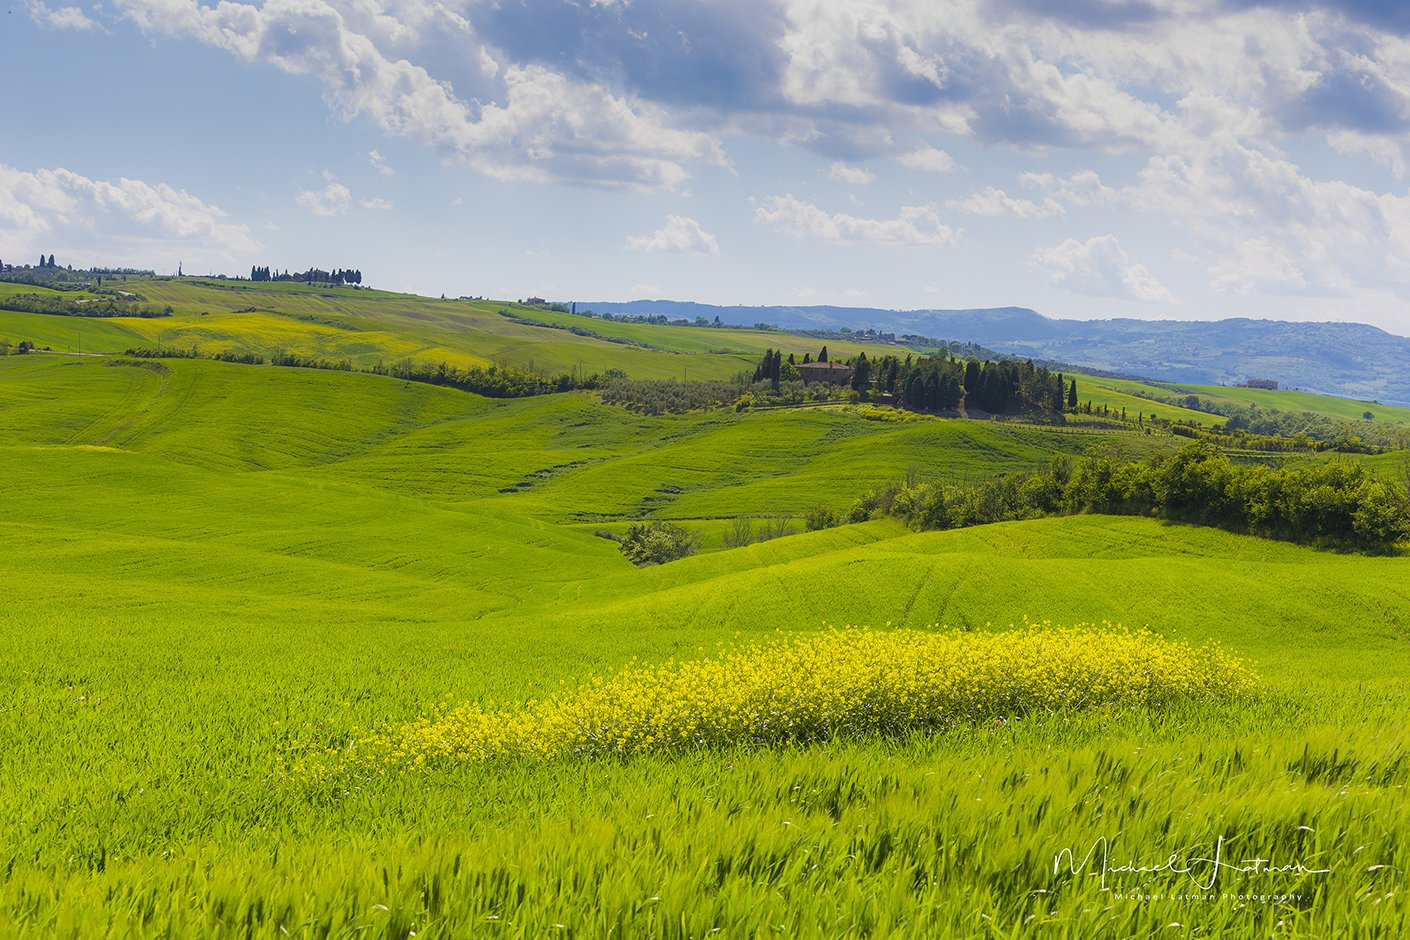 spring,toscan,italy, green, wheat, velvet,flowers, sky,blue,cypress, Michael Latman